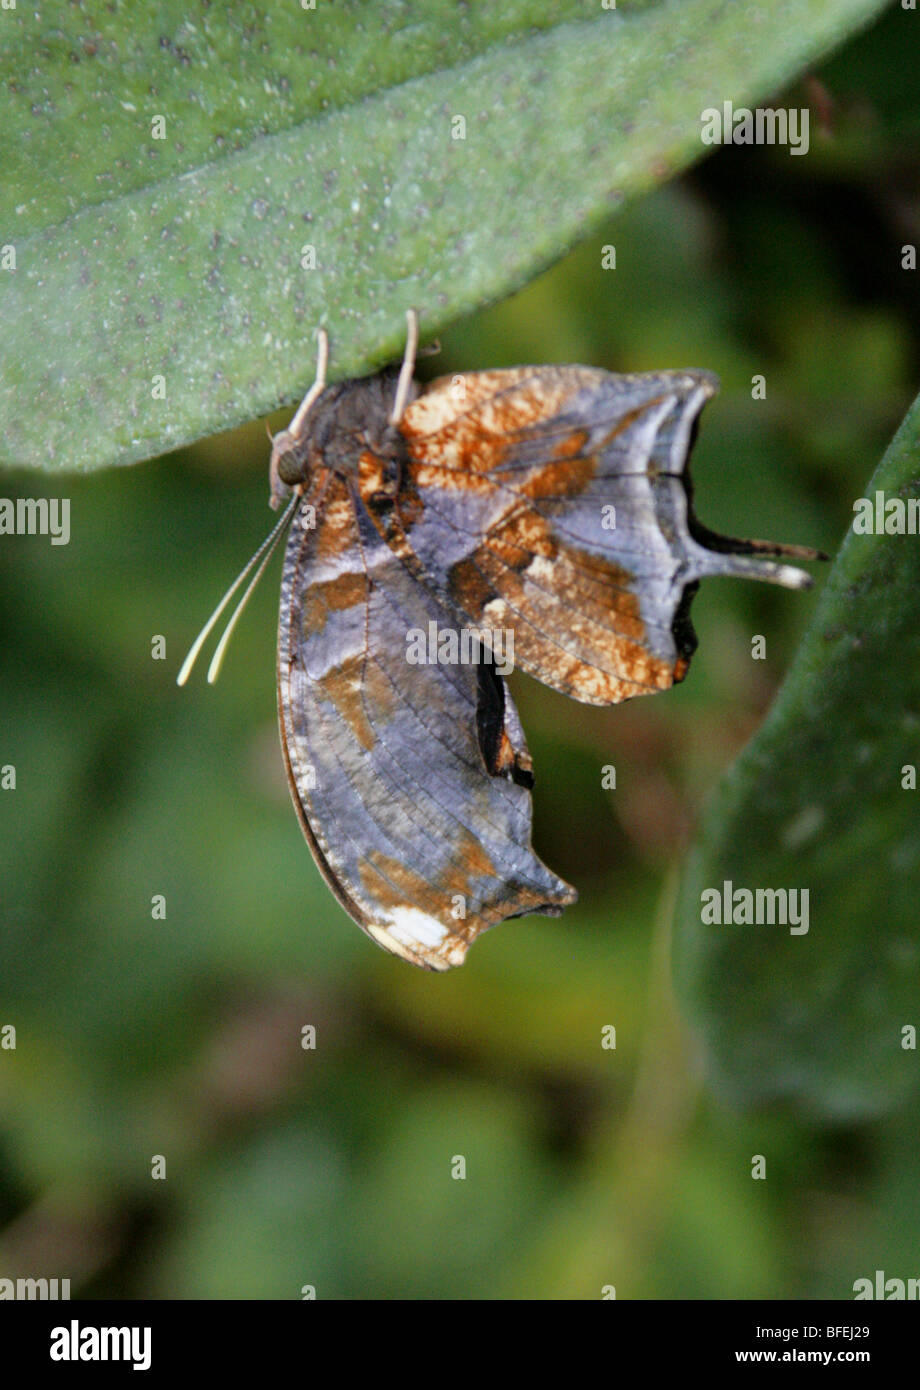 Underside of a Swallowtail Butterfly (sp. unknown). Dead Leaf Mimicry. - Stock Image